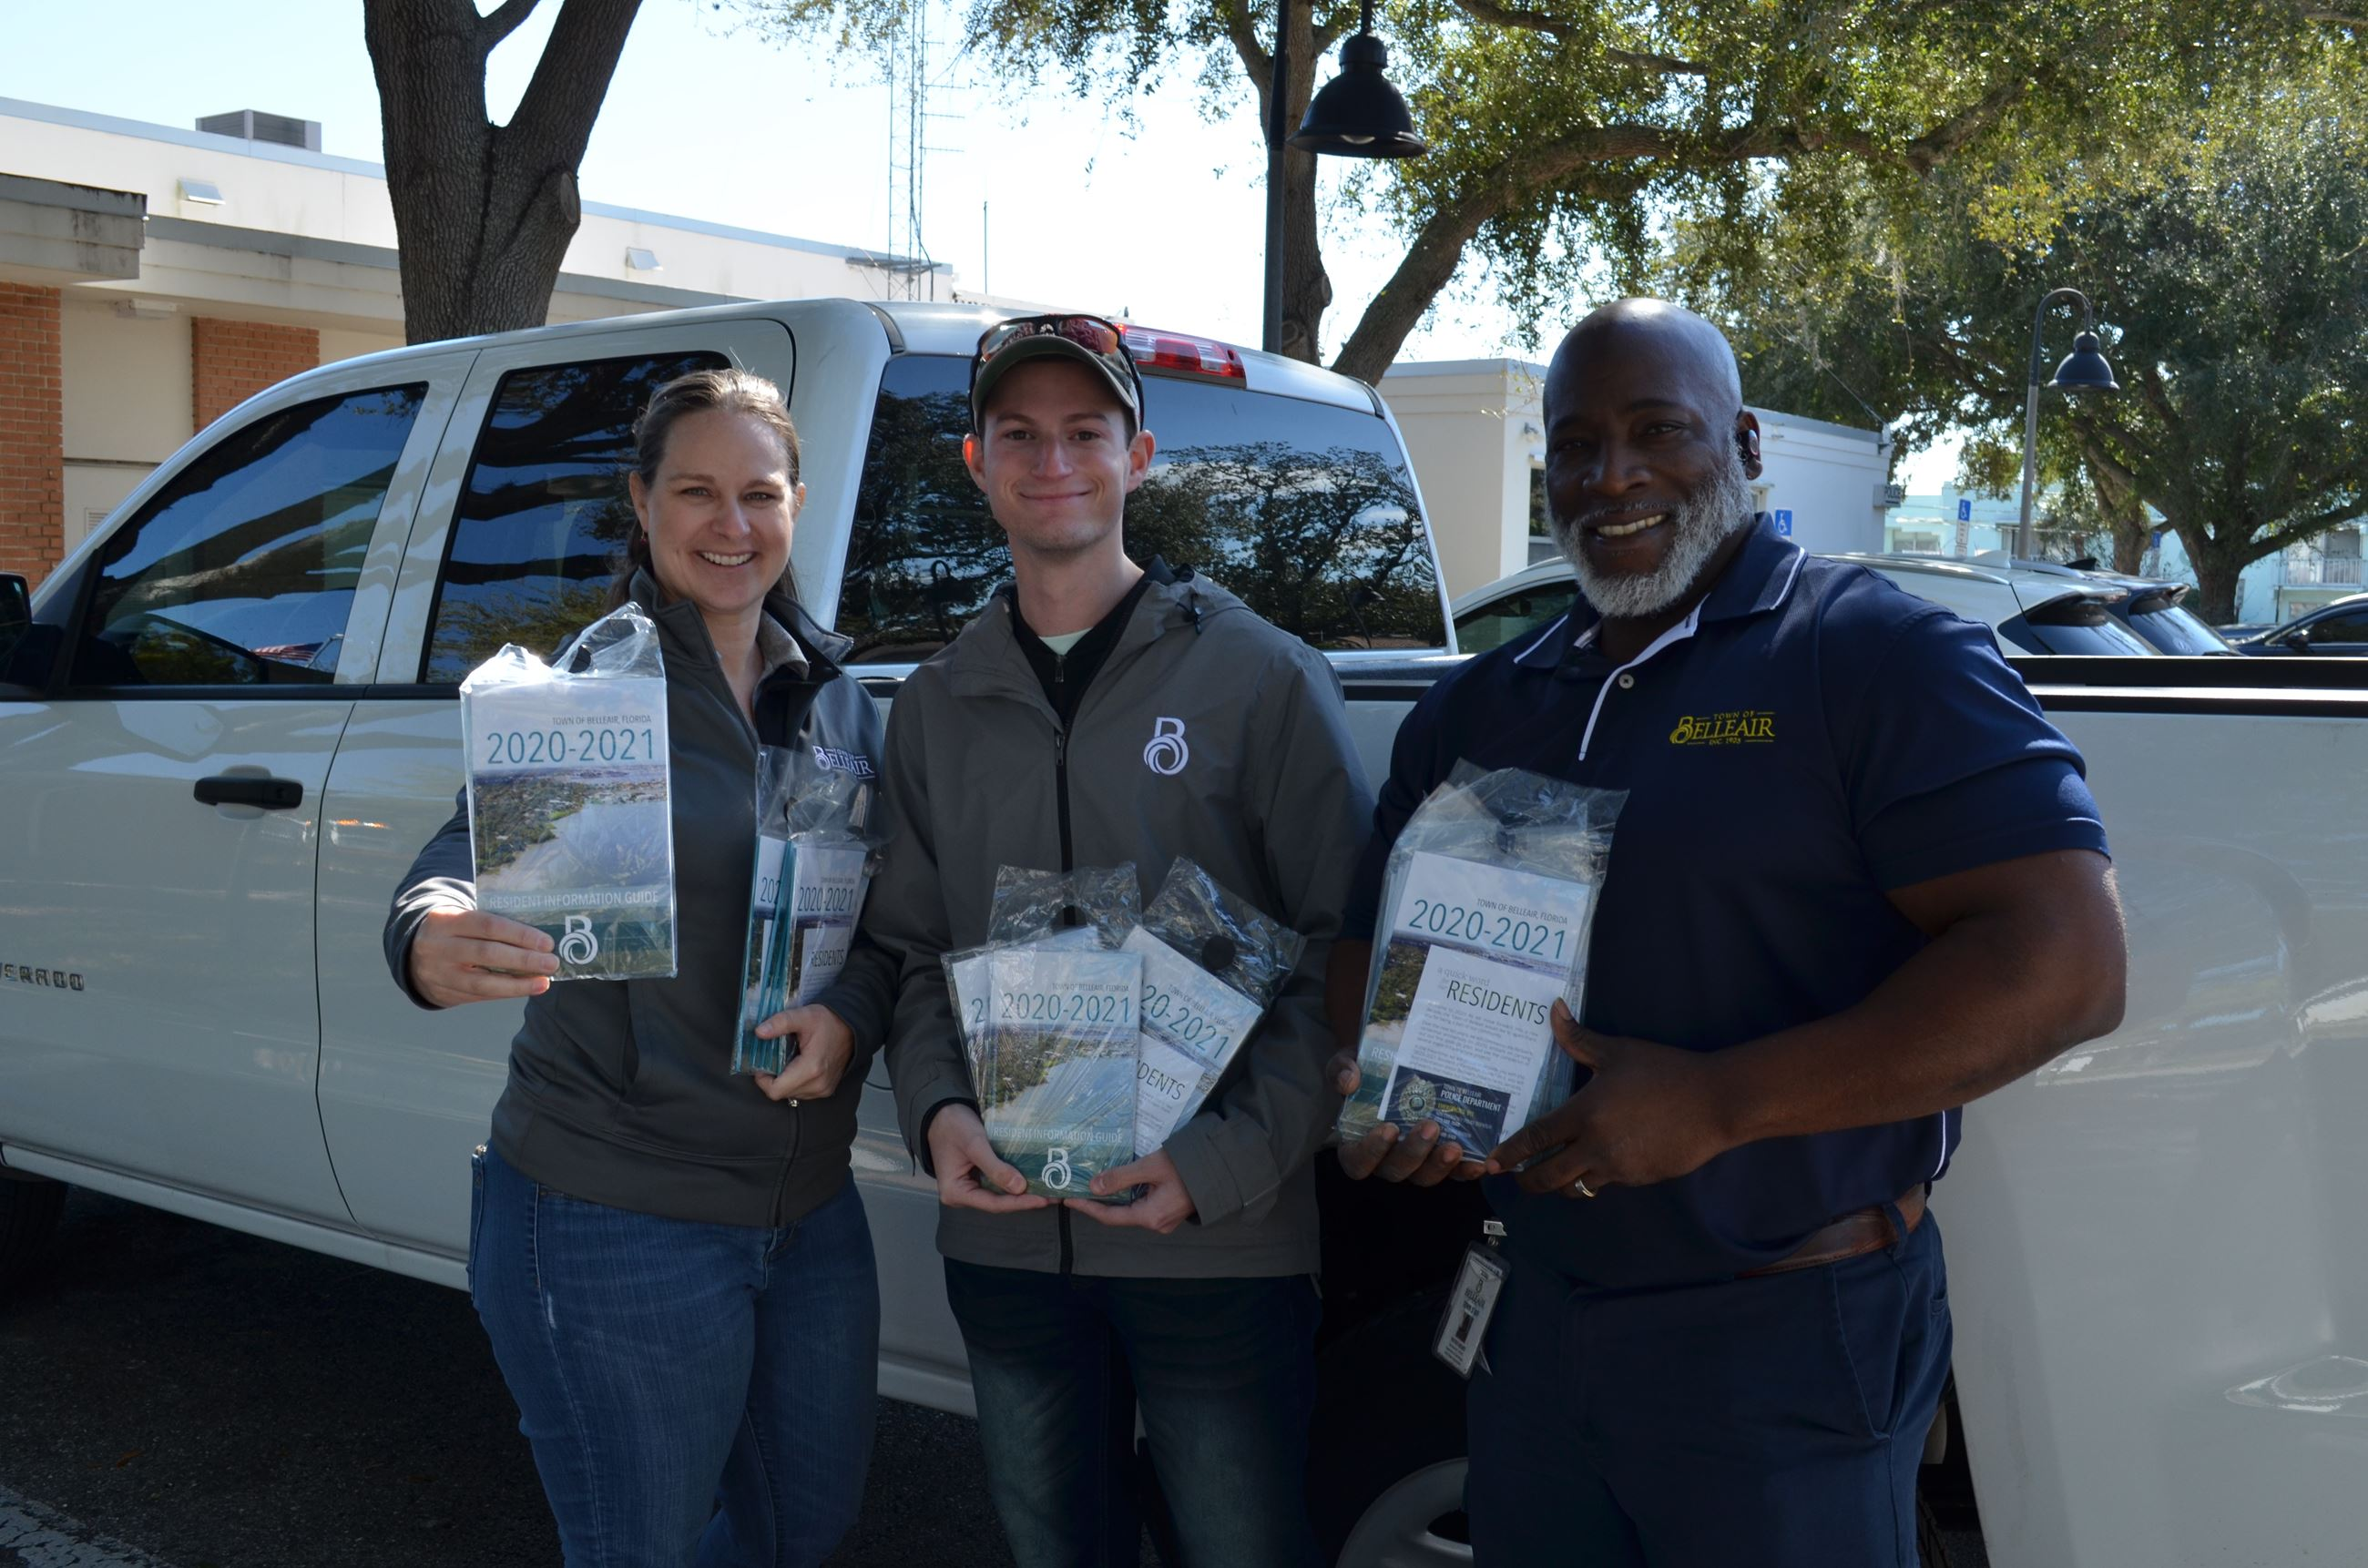 Three town employees hold copies of the resident information guide prior to delivery.